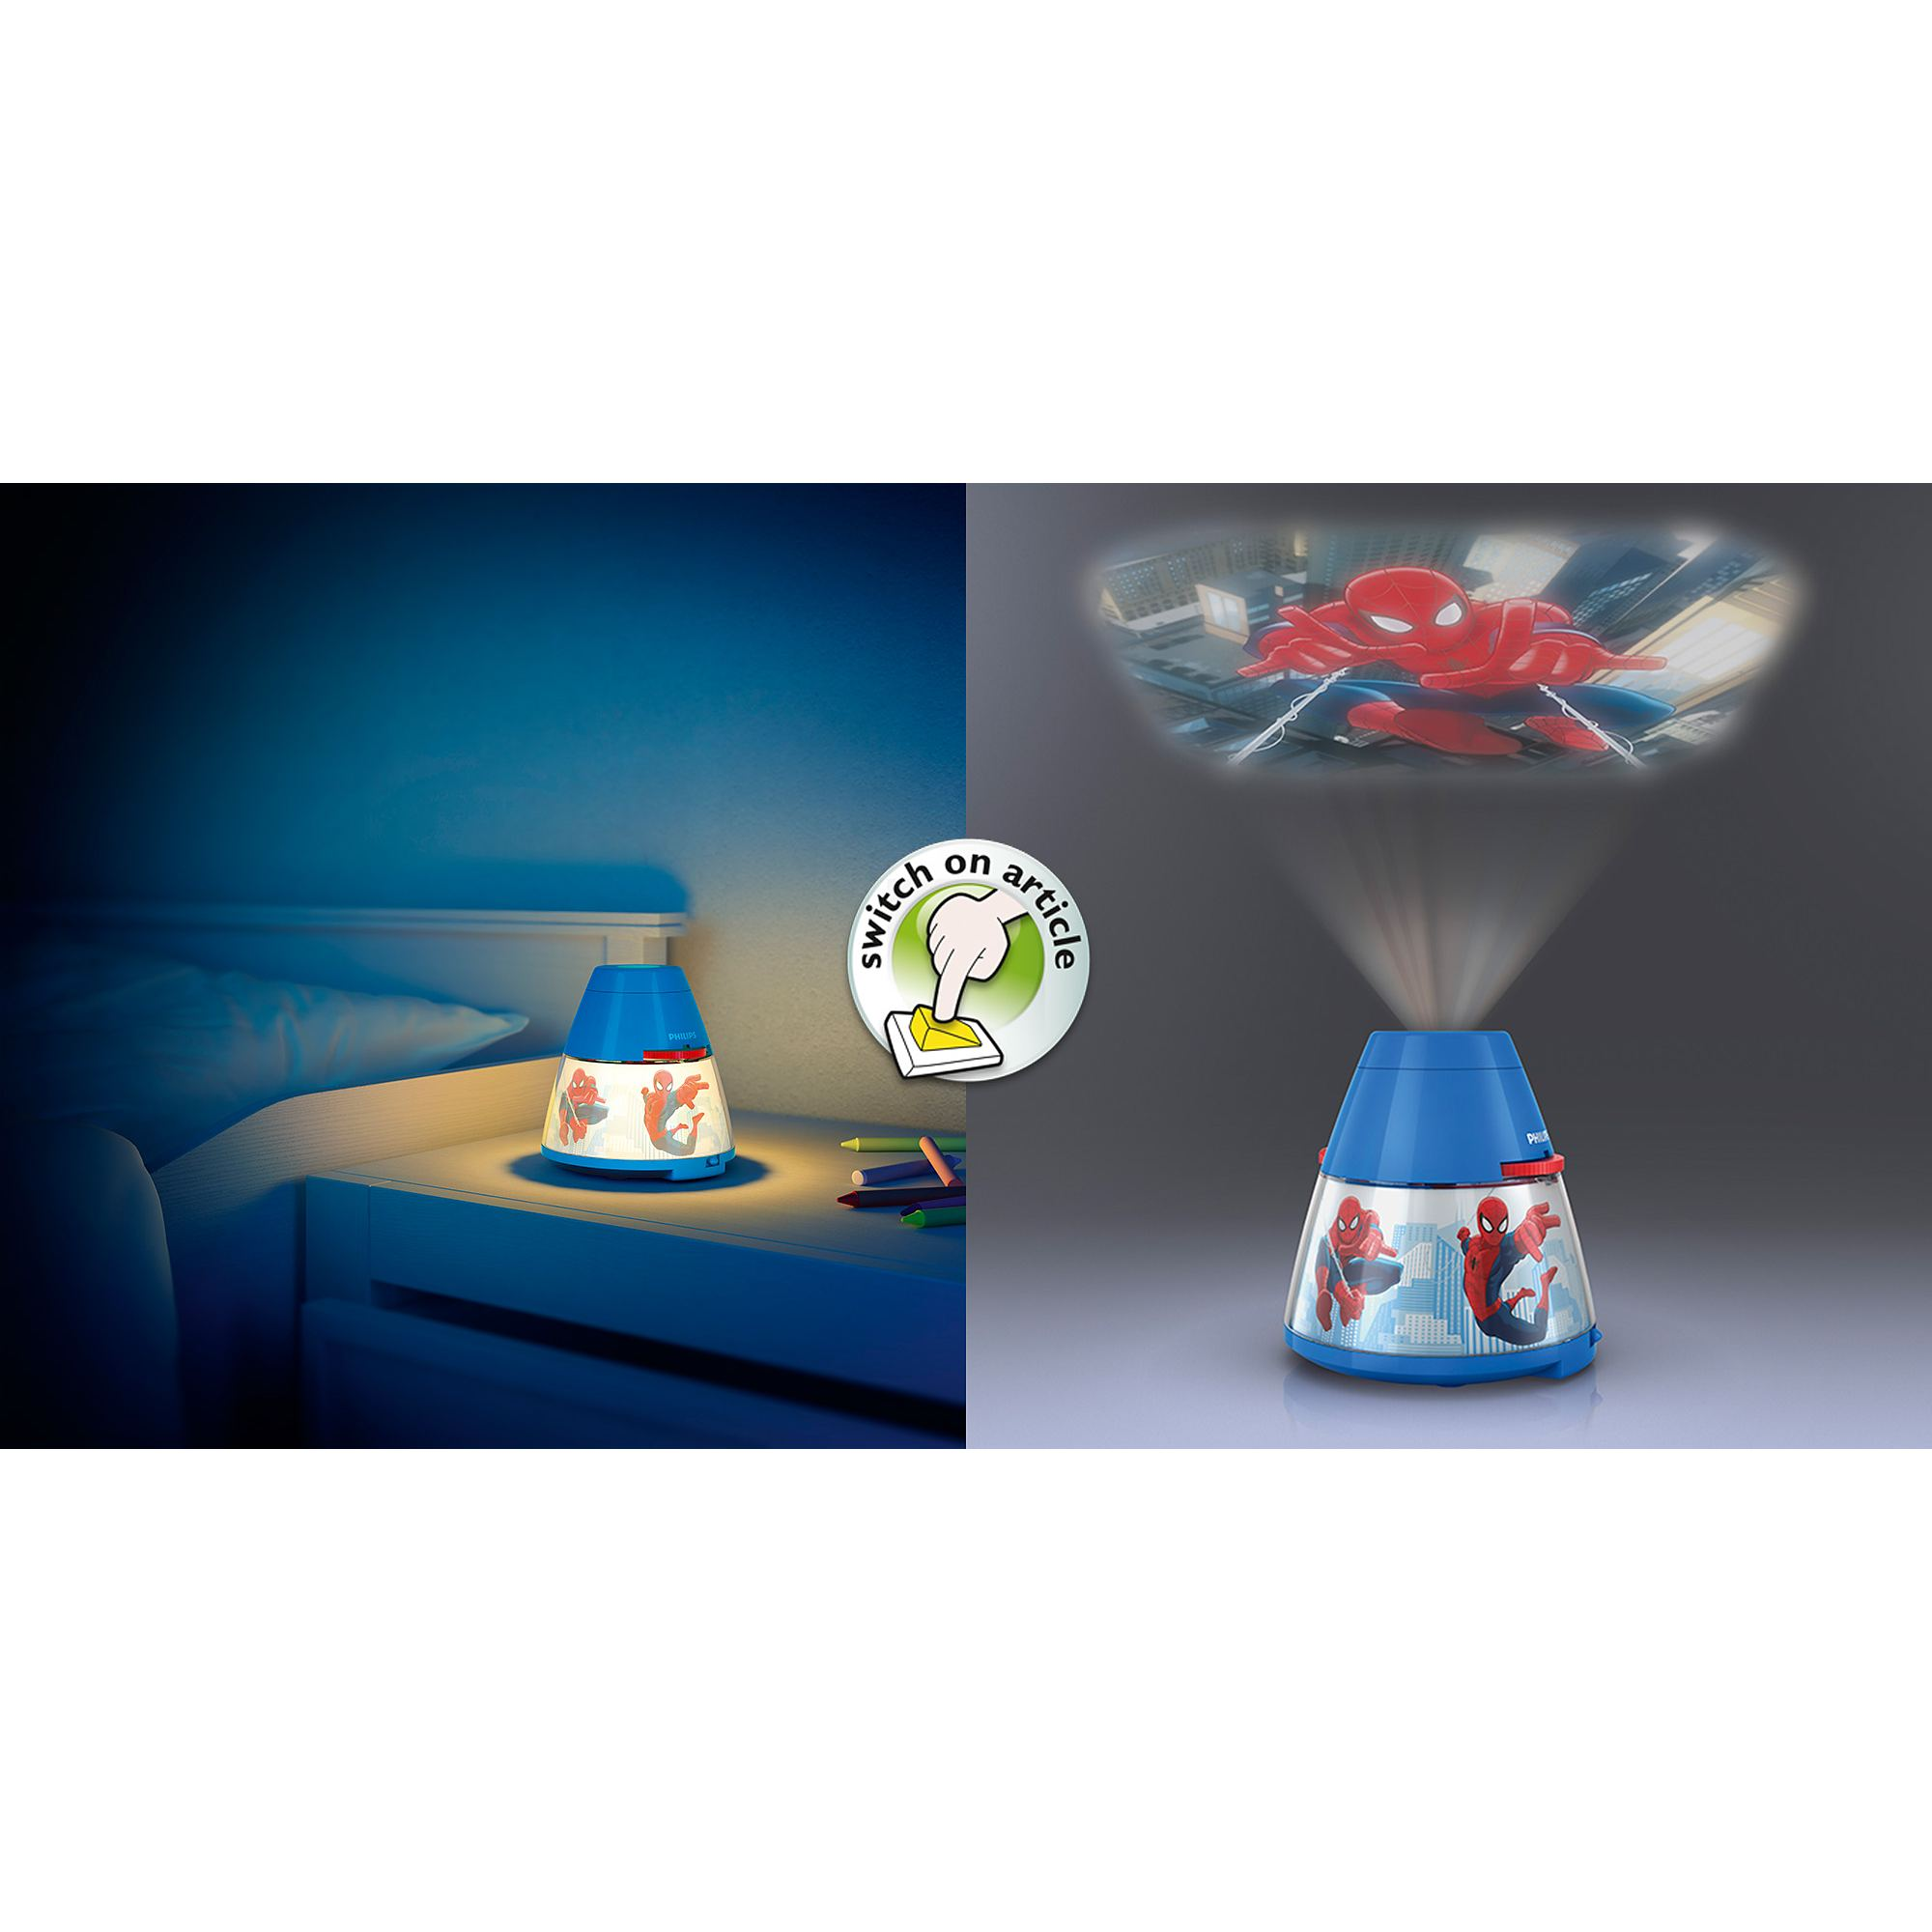 philips marvel spiderman children 39 s led night light. Black Bedroom Furniture Sets. Home Design Ideas